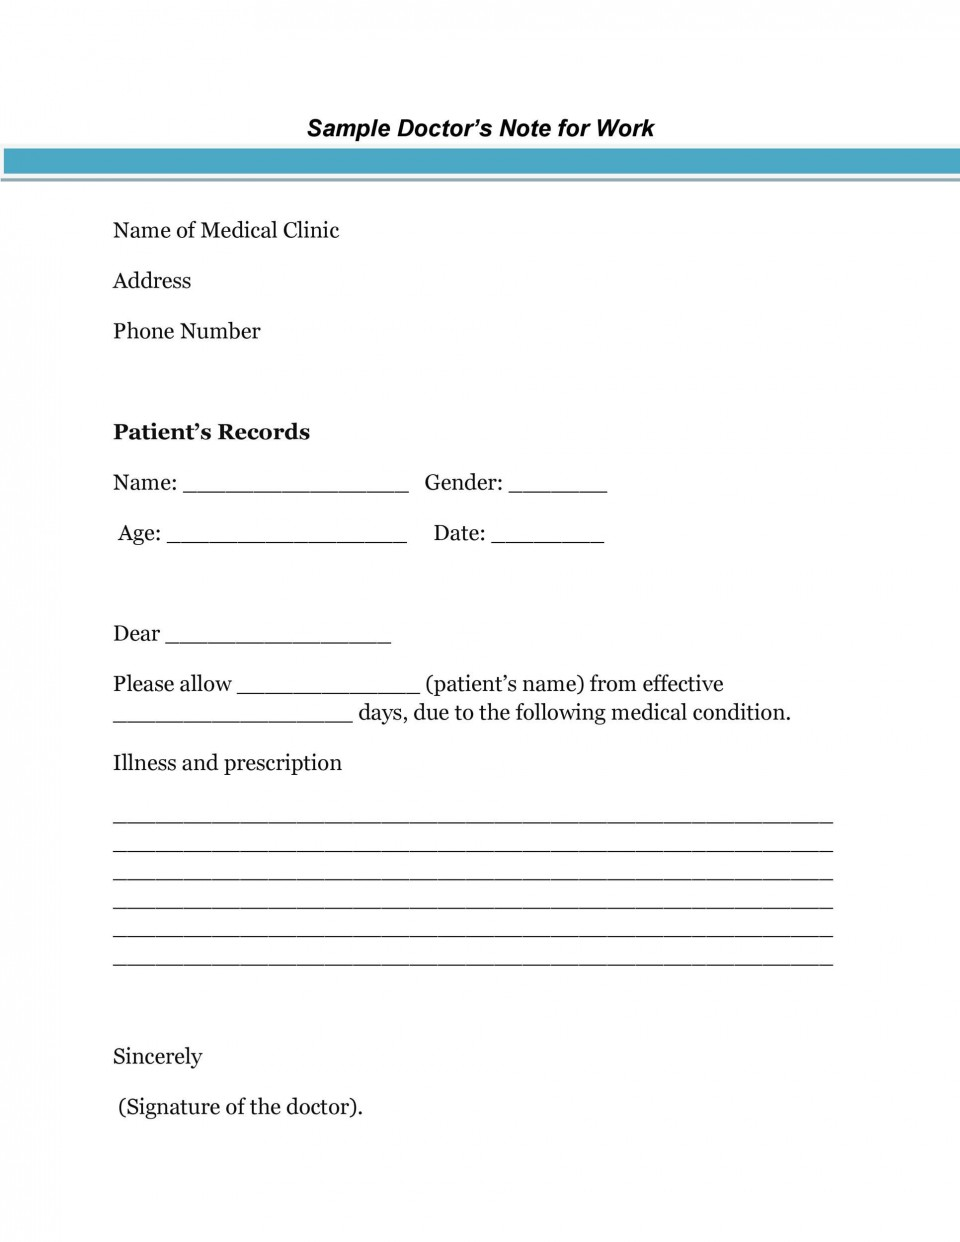 005 Wondrou Doctor Excuse Template For Work Highest Clarity  Note Missing960